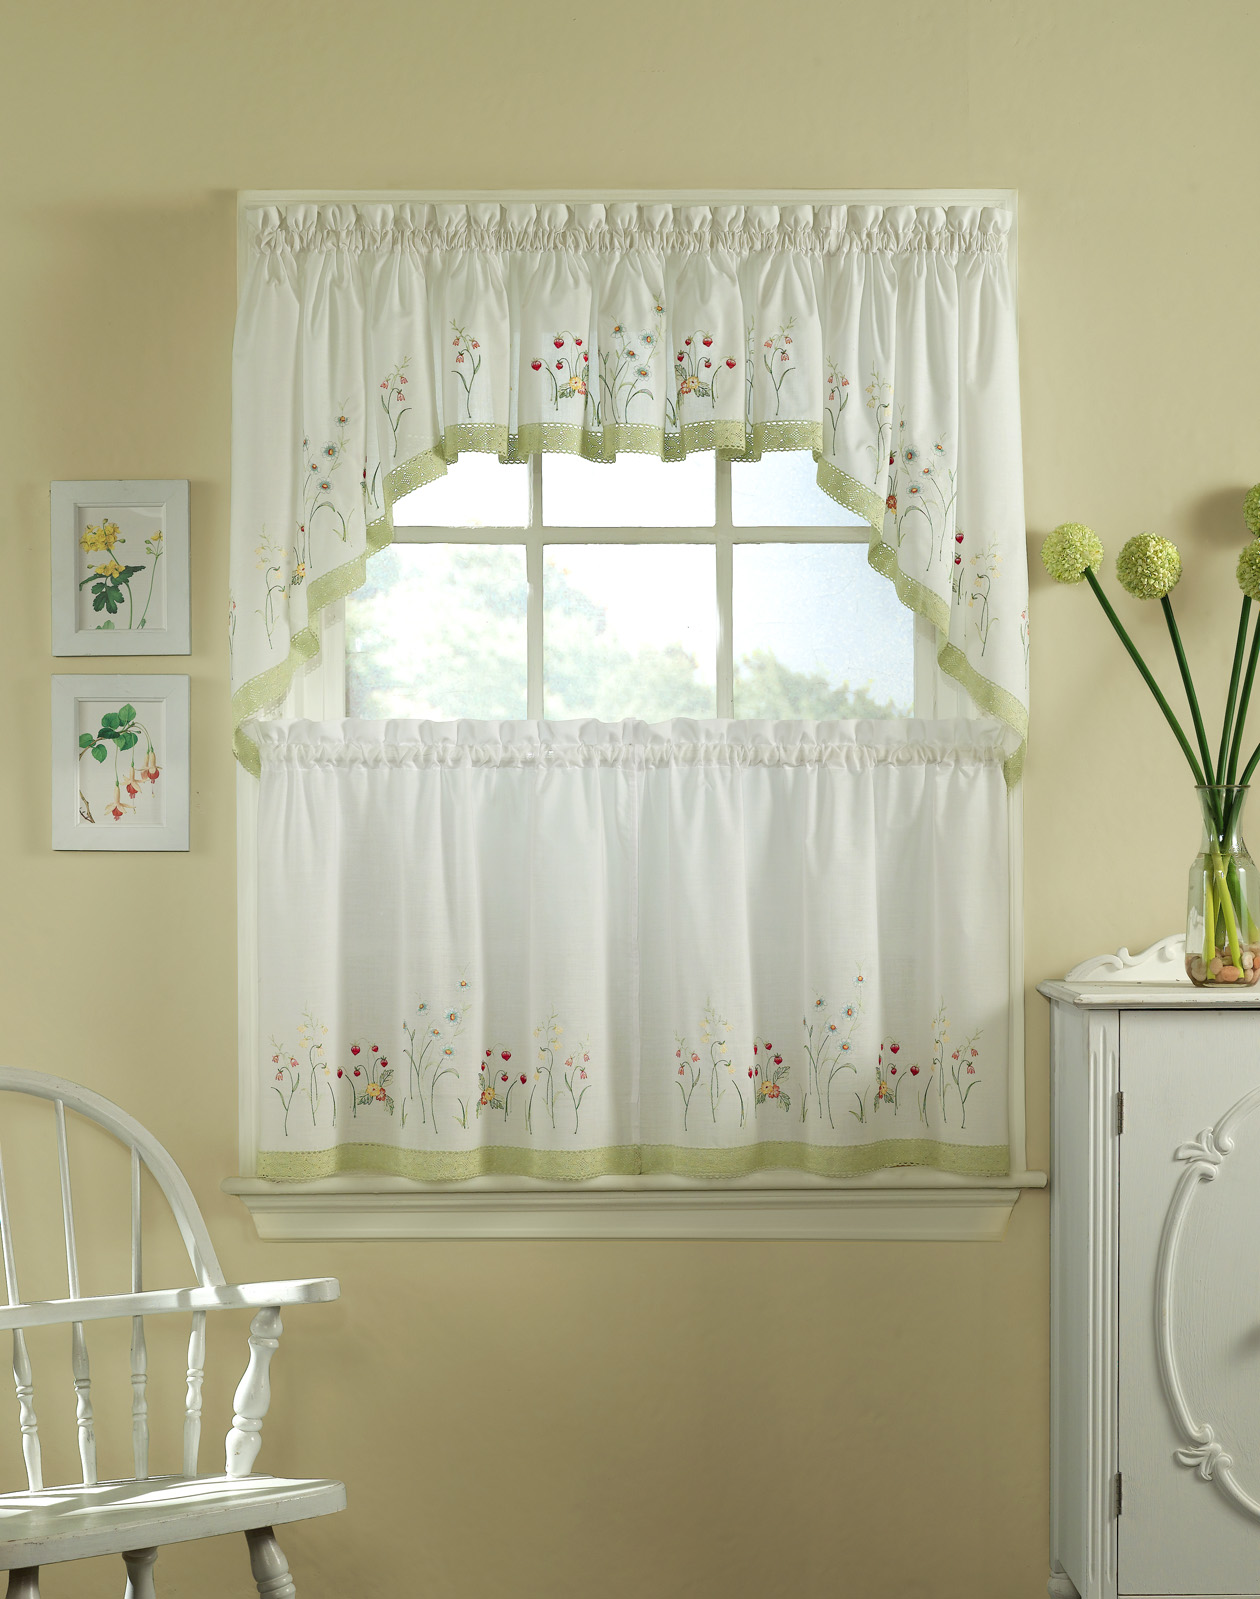 Kinds Of Vintage Floral Curtains - Lovely half window curtains with window valance and green floral accent plus vintage chair and wooden